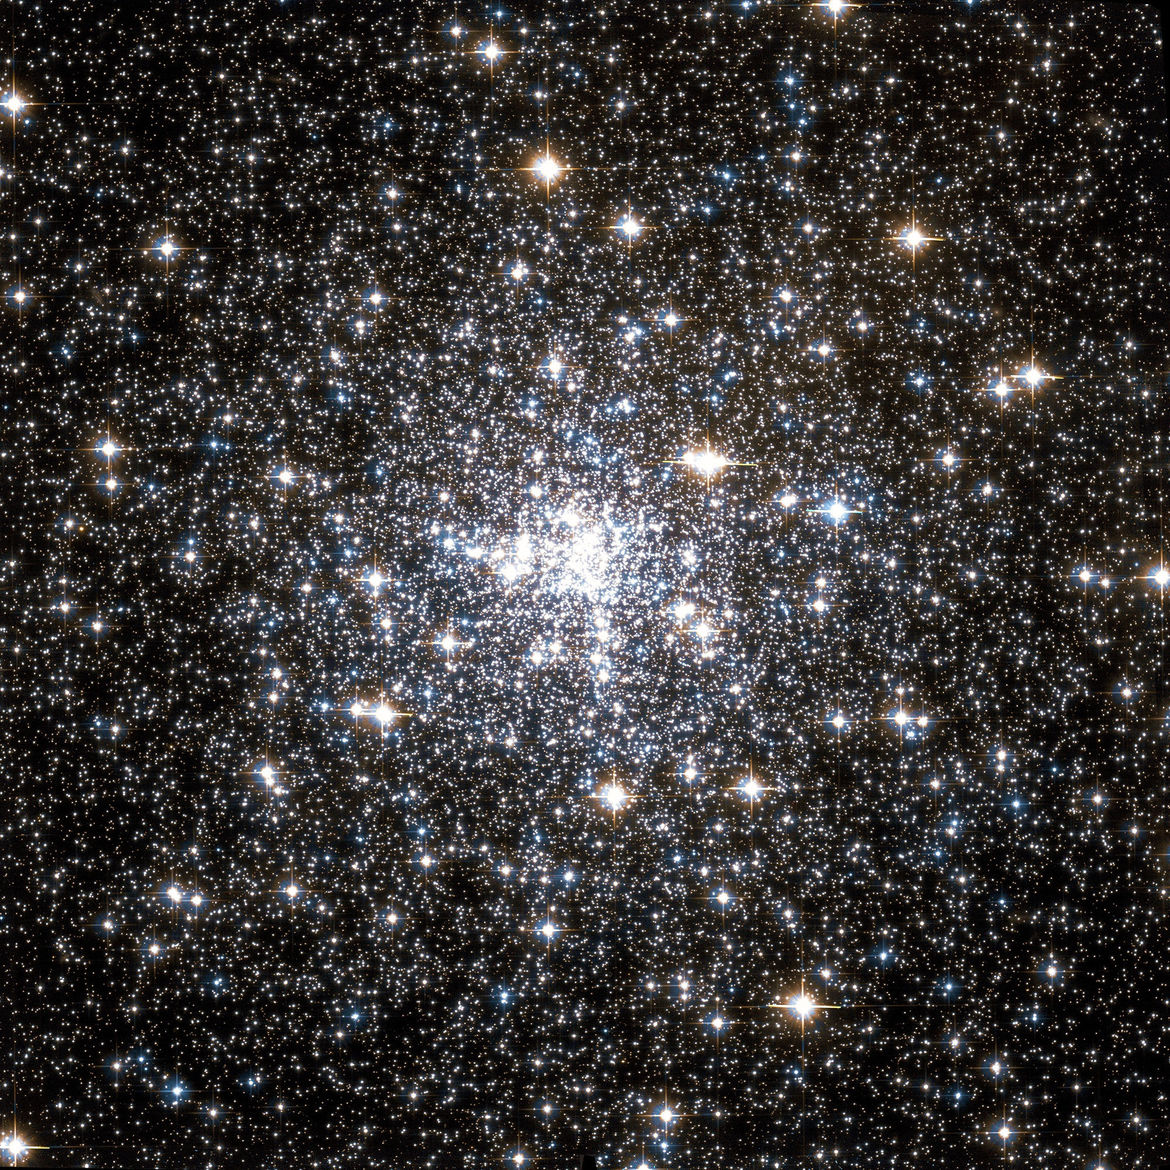 The globular cluster NGC 6752, in a Hubble image taken in 2012. Credit: ESA/NASA/Wikisky